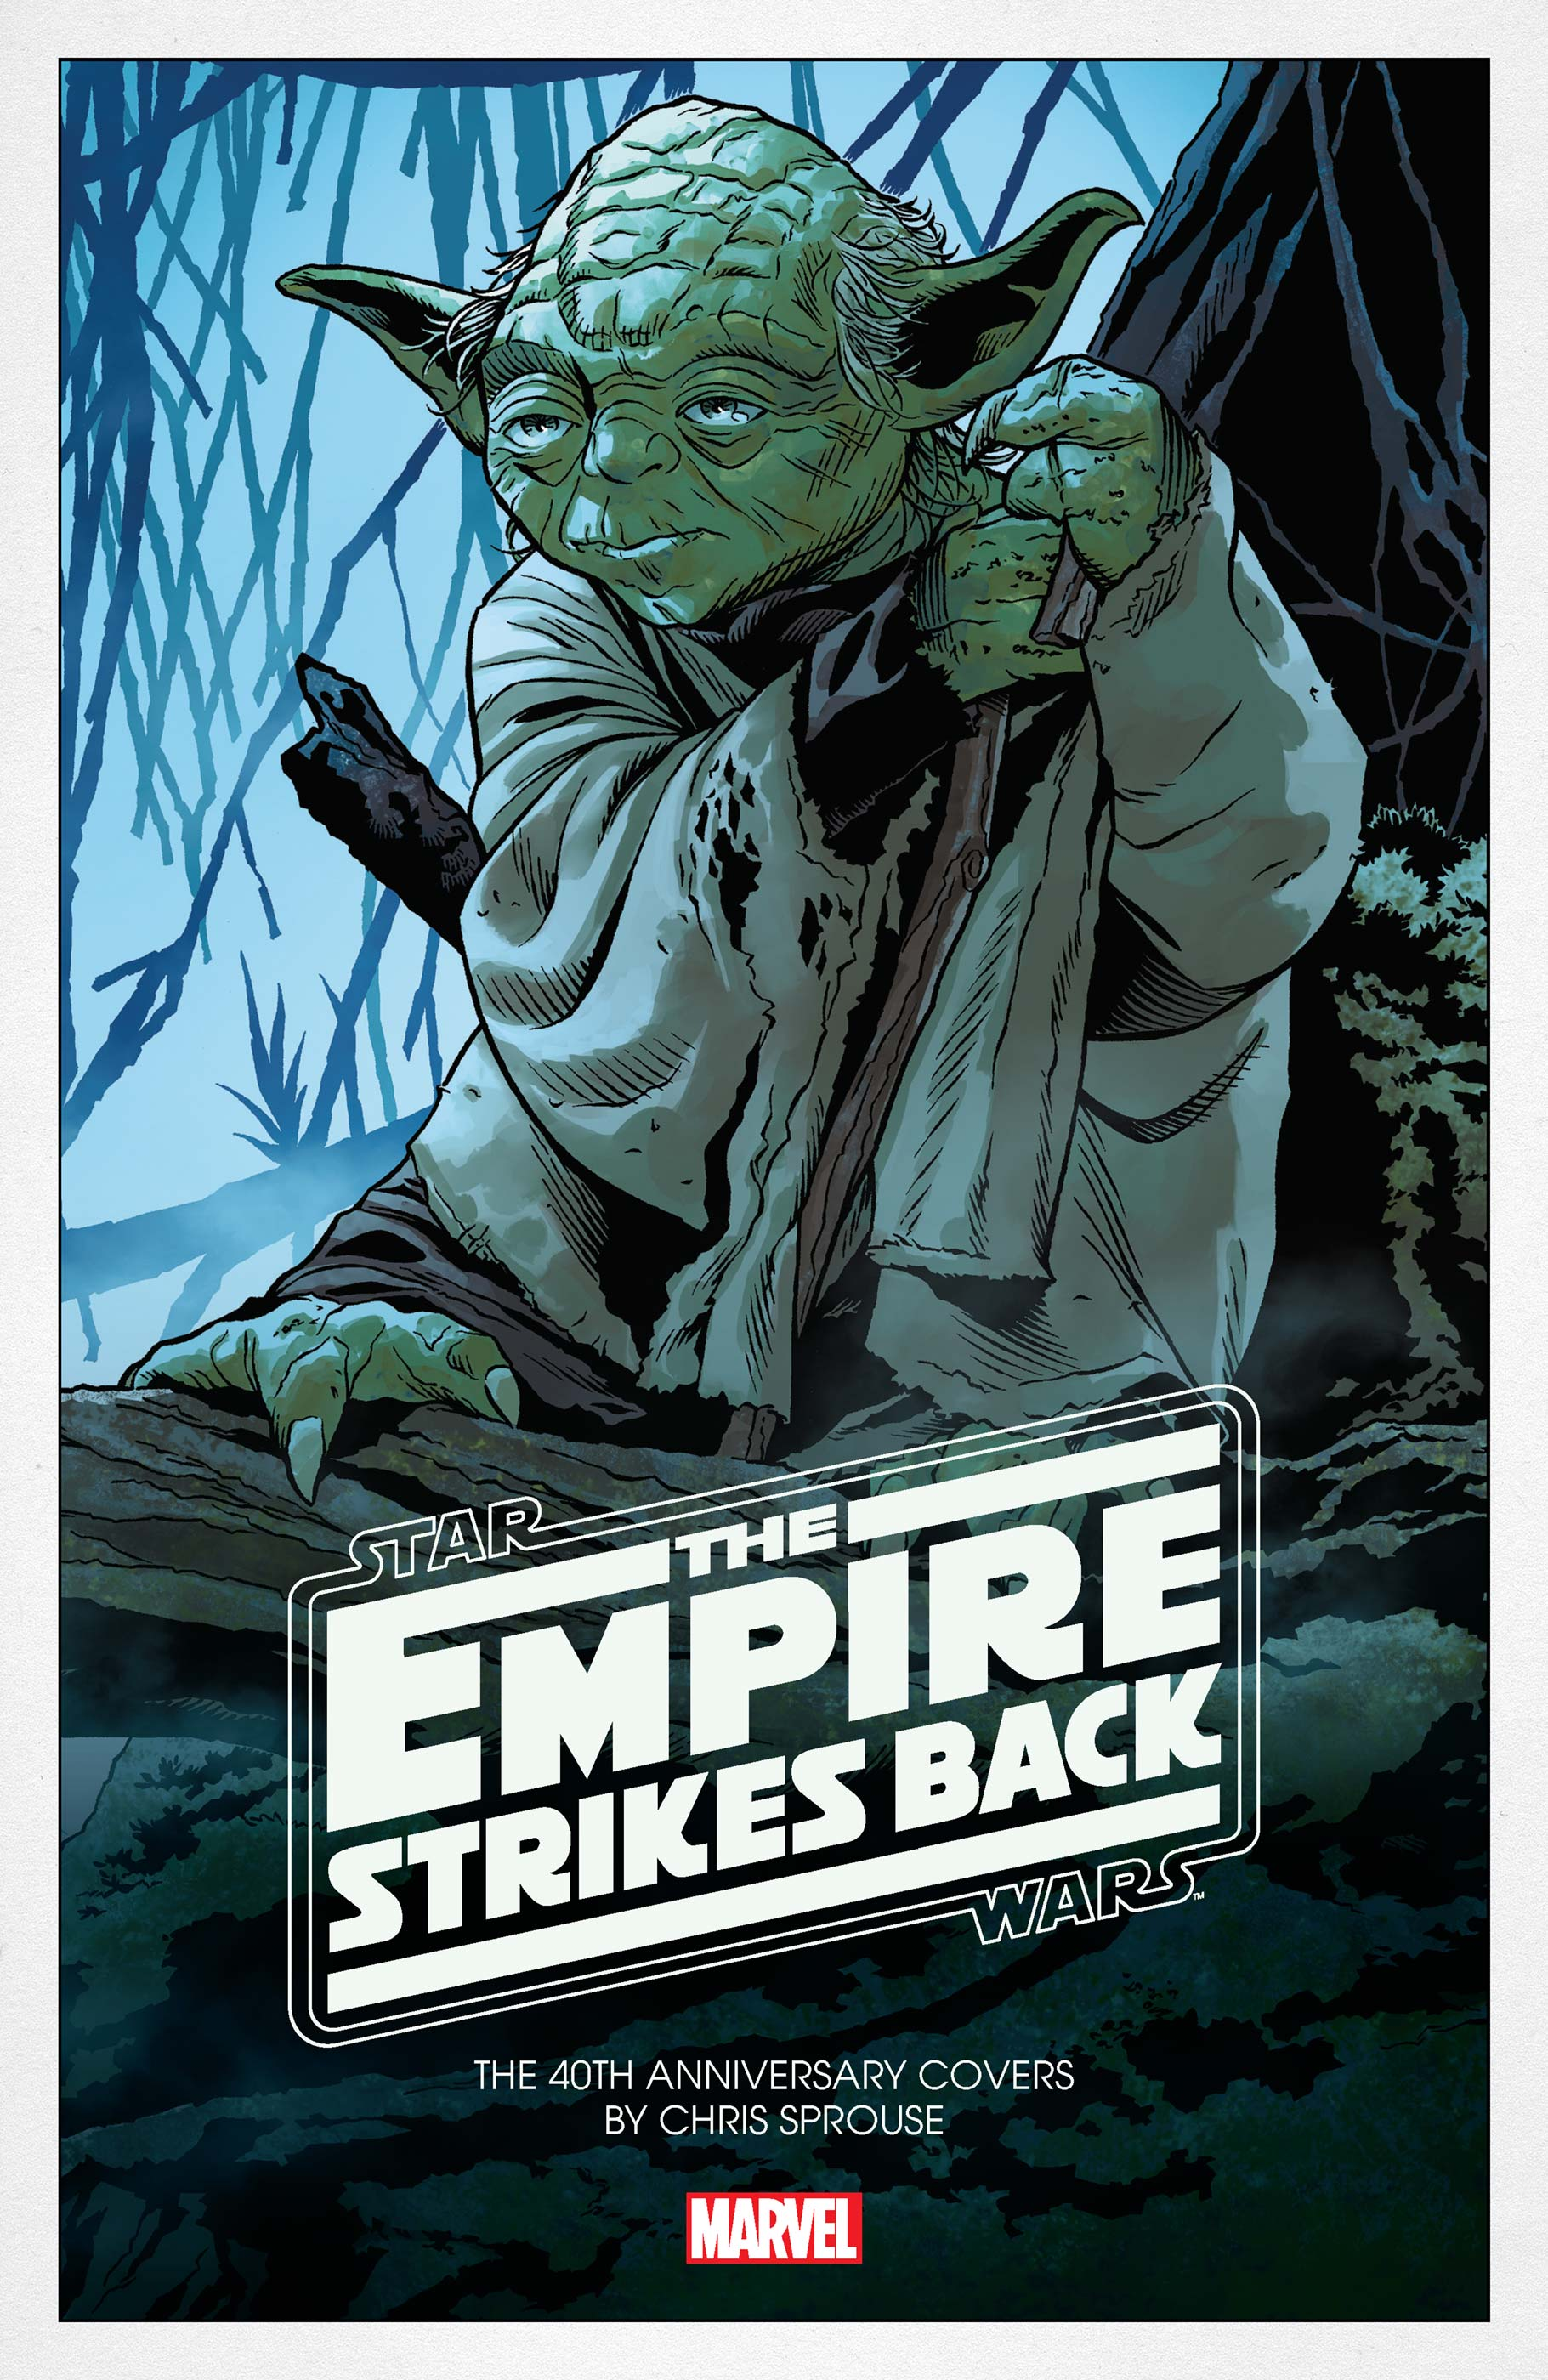 Star Wars: The Empire Strikes Back - The 40th Anniversary Covers by Chris Sprouse (2021) #1